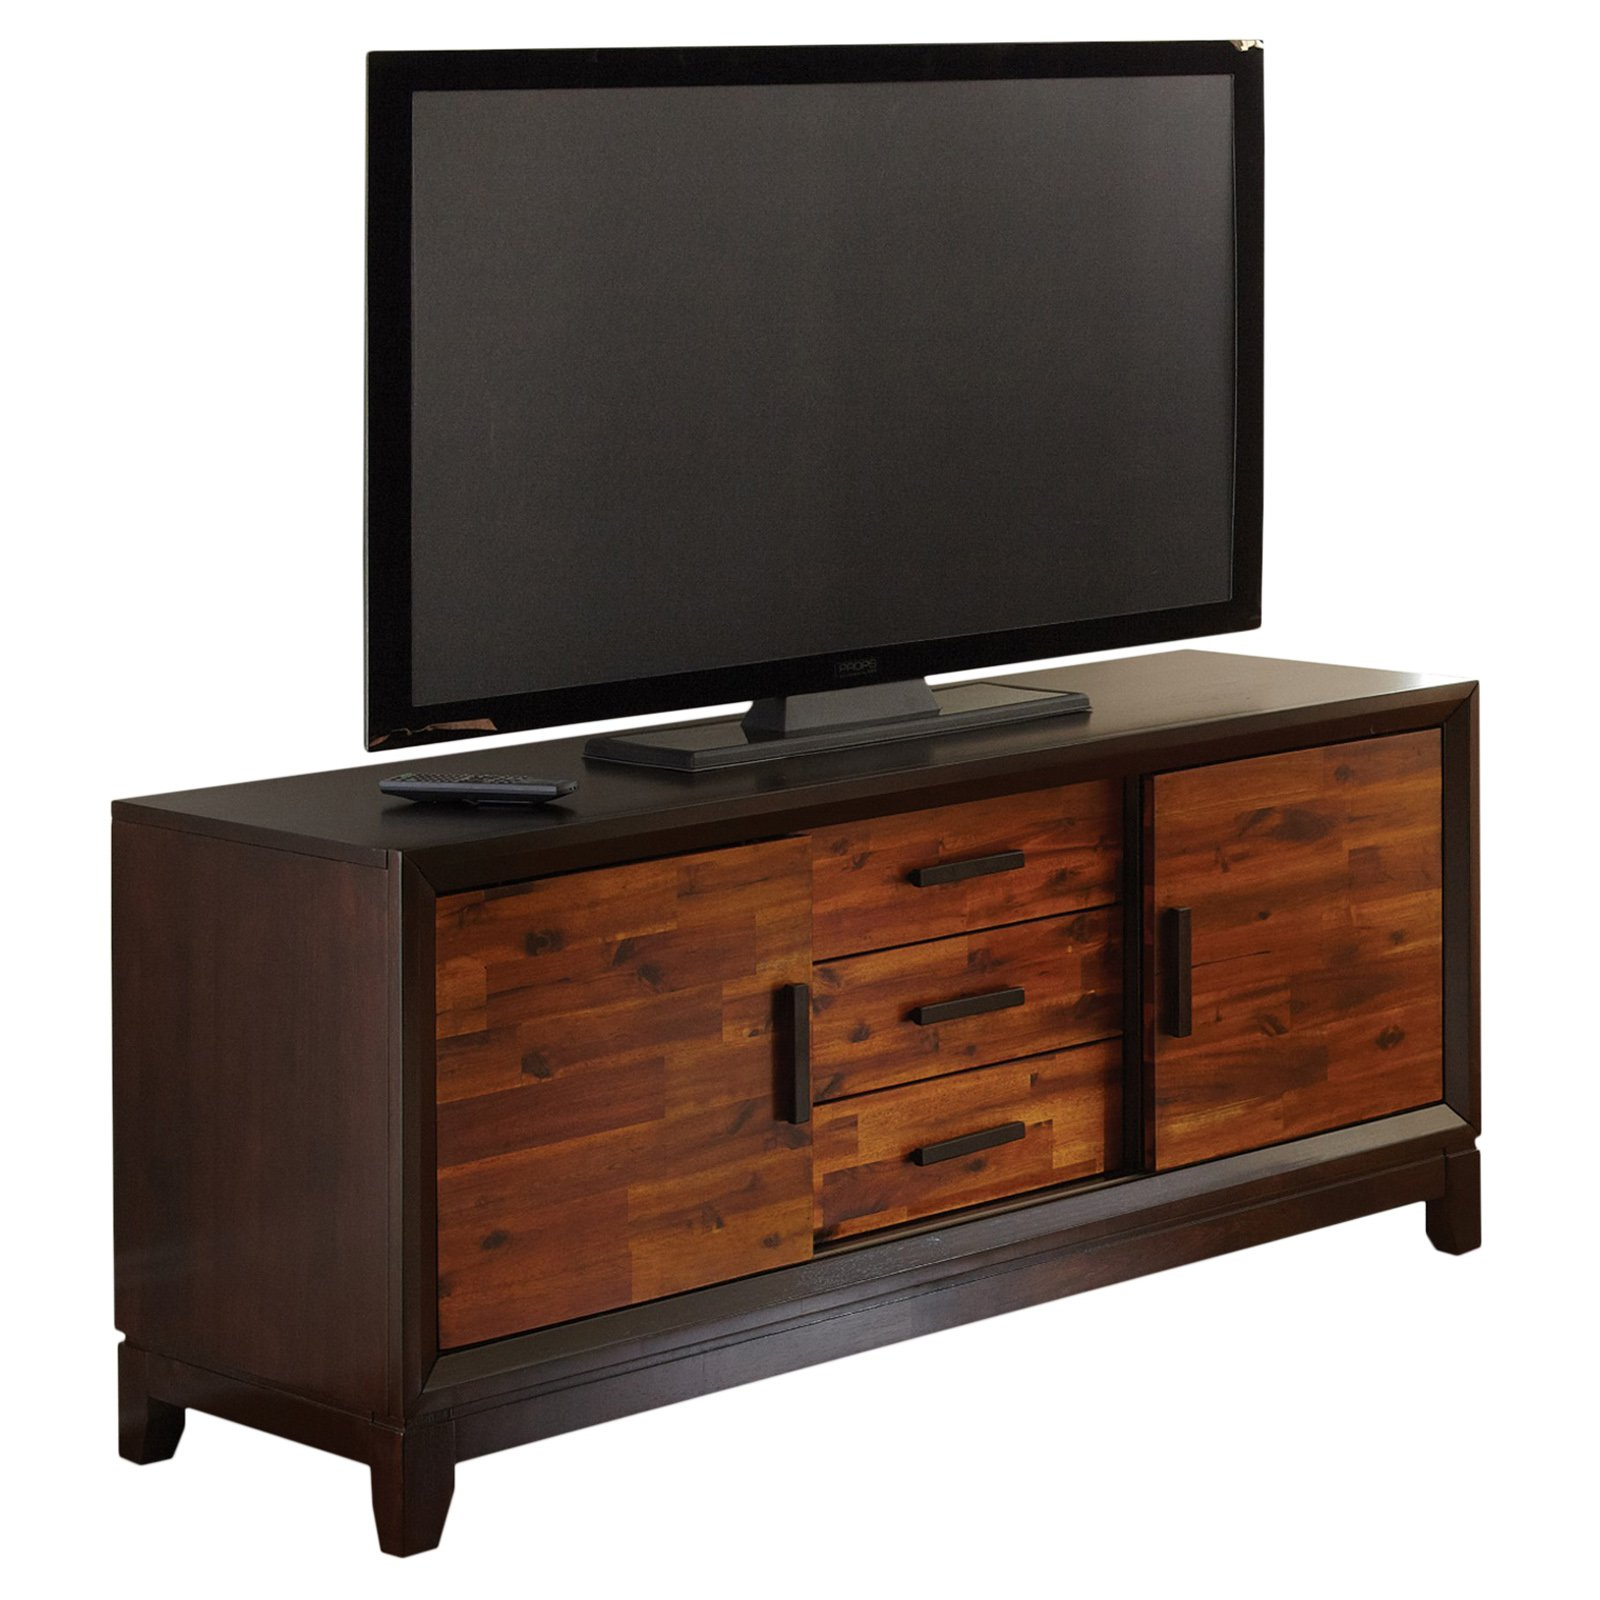 Steve Silver Abaco TV Cabinet by Steve Silver